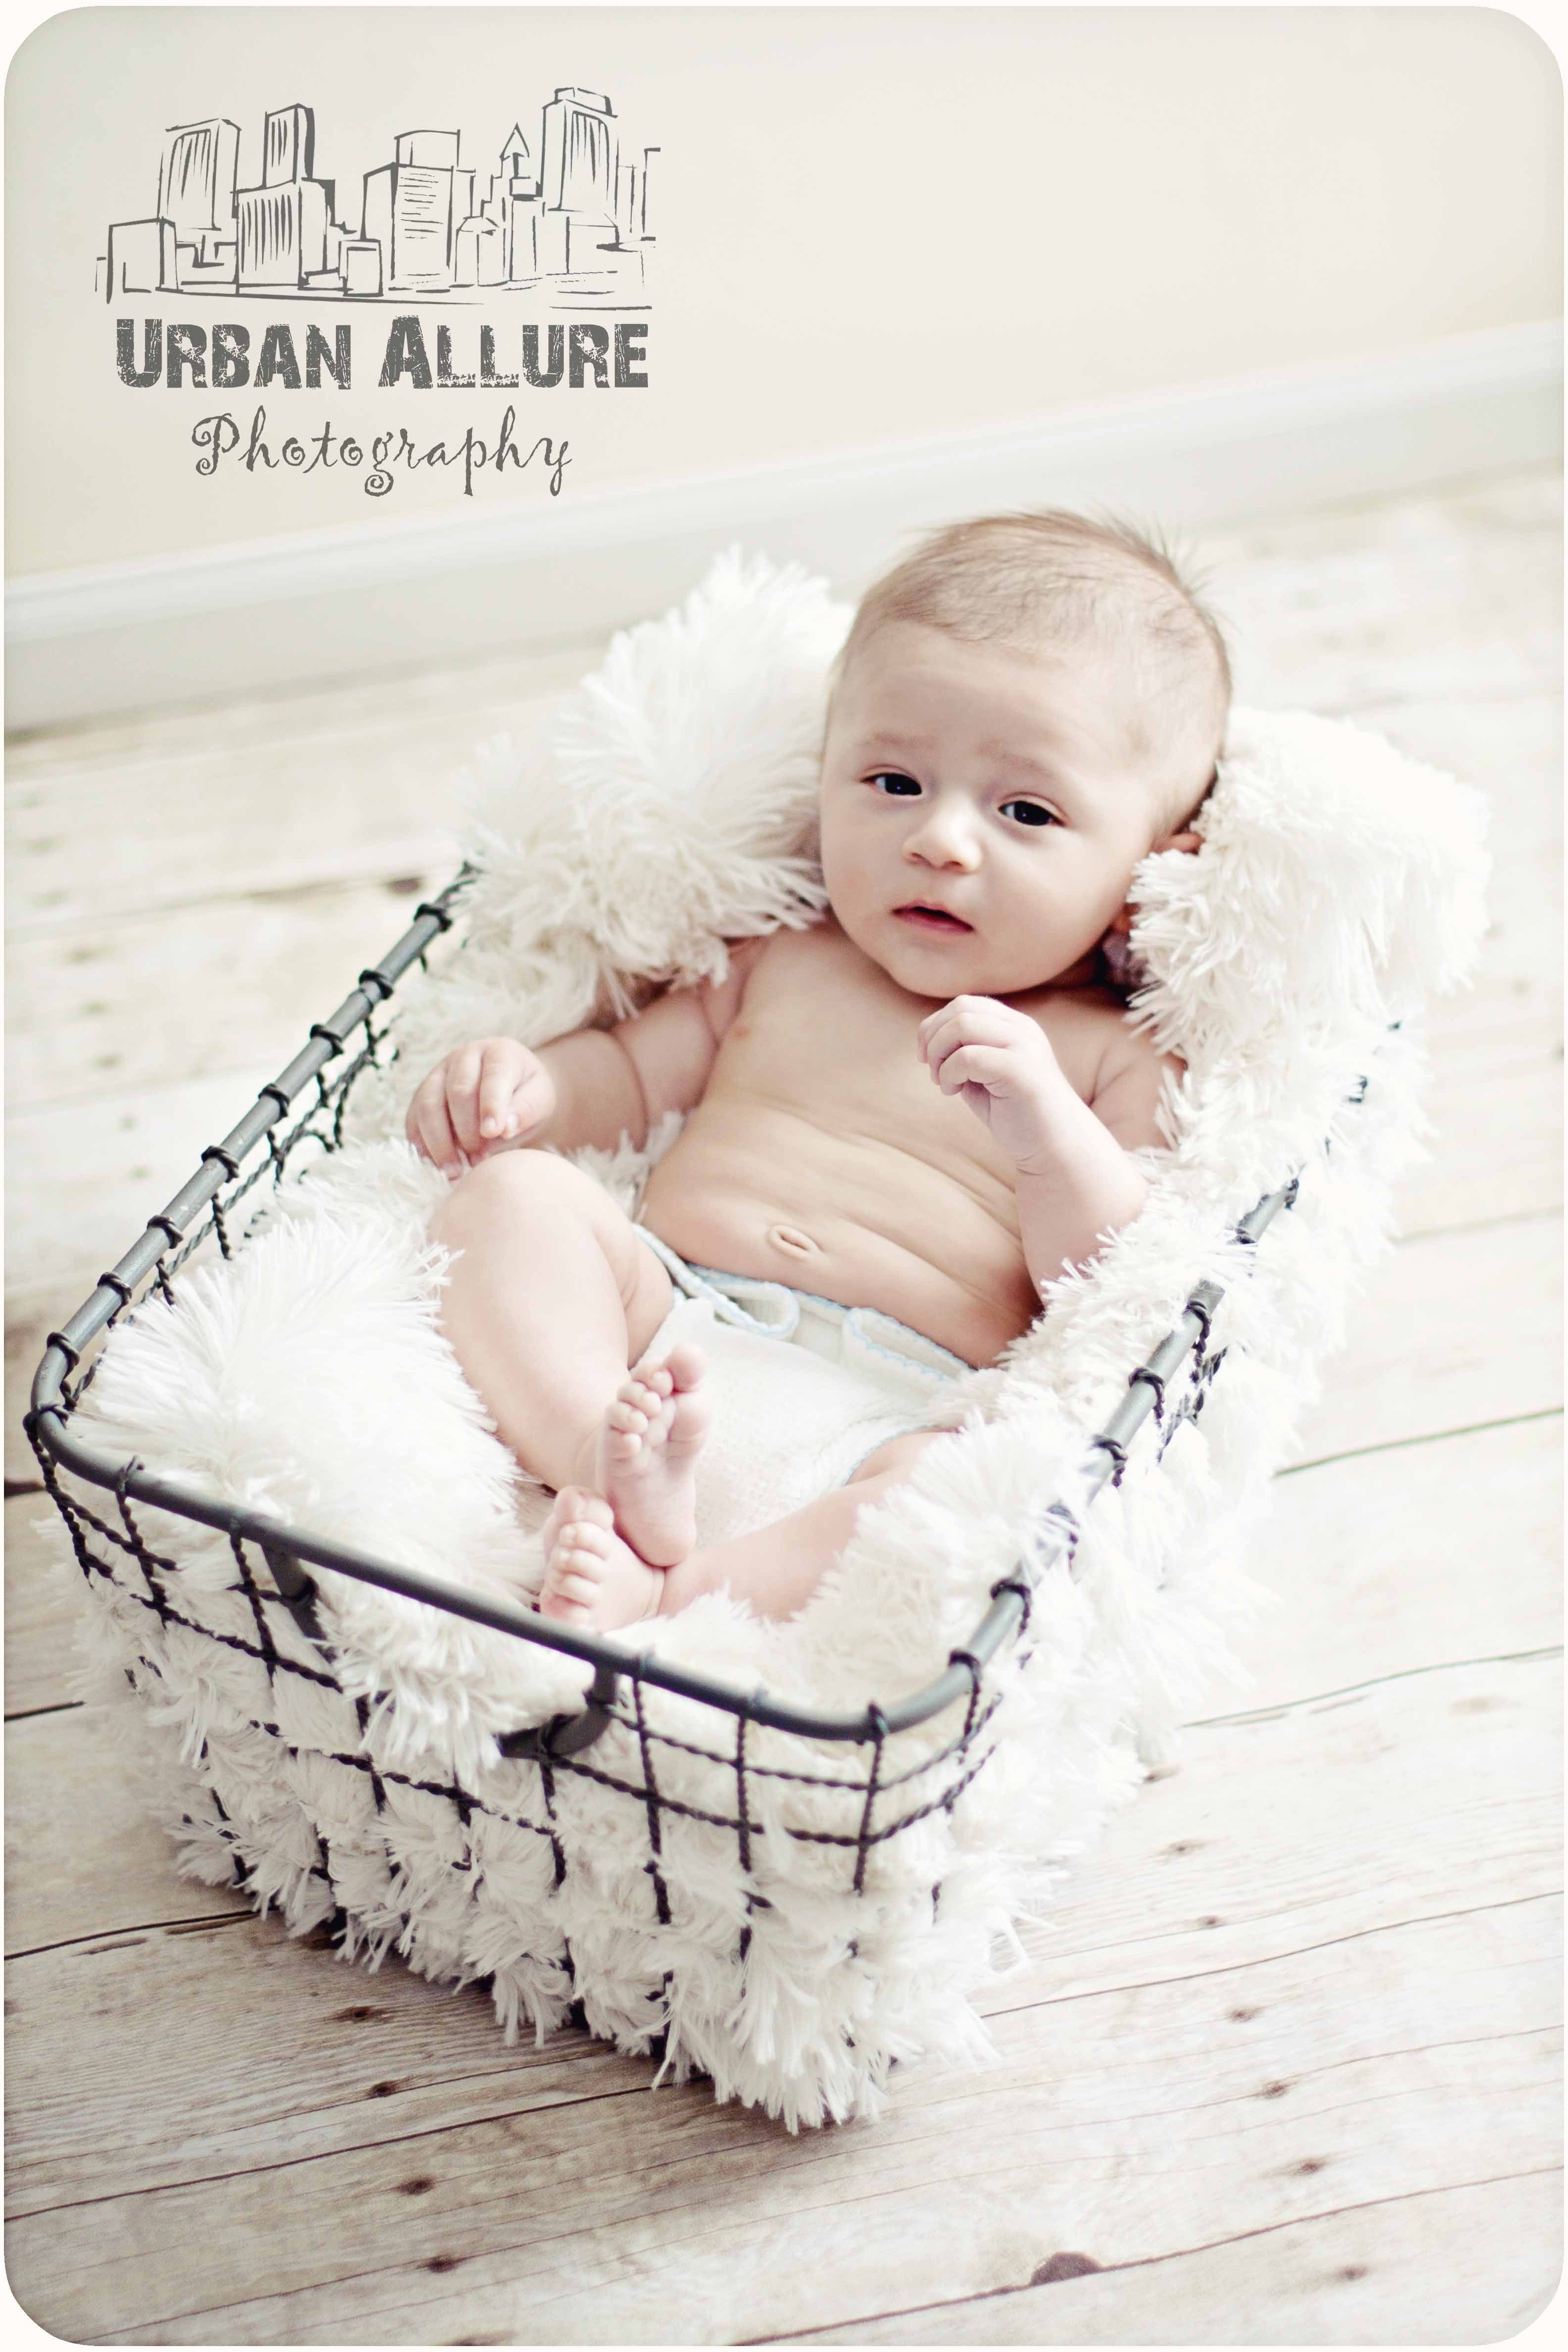 10 Lovely 3 Month Old Baby Picture Ideas for judsons three month pictures perhaps photography pinterest 3 2020